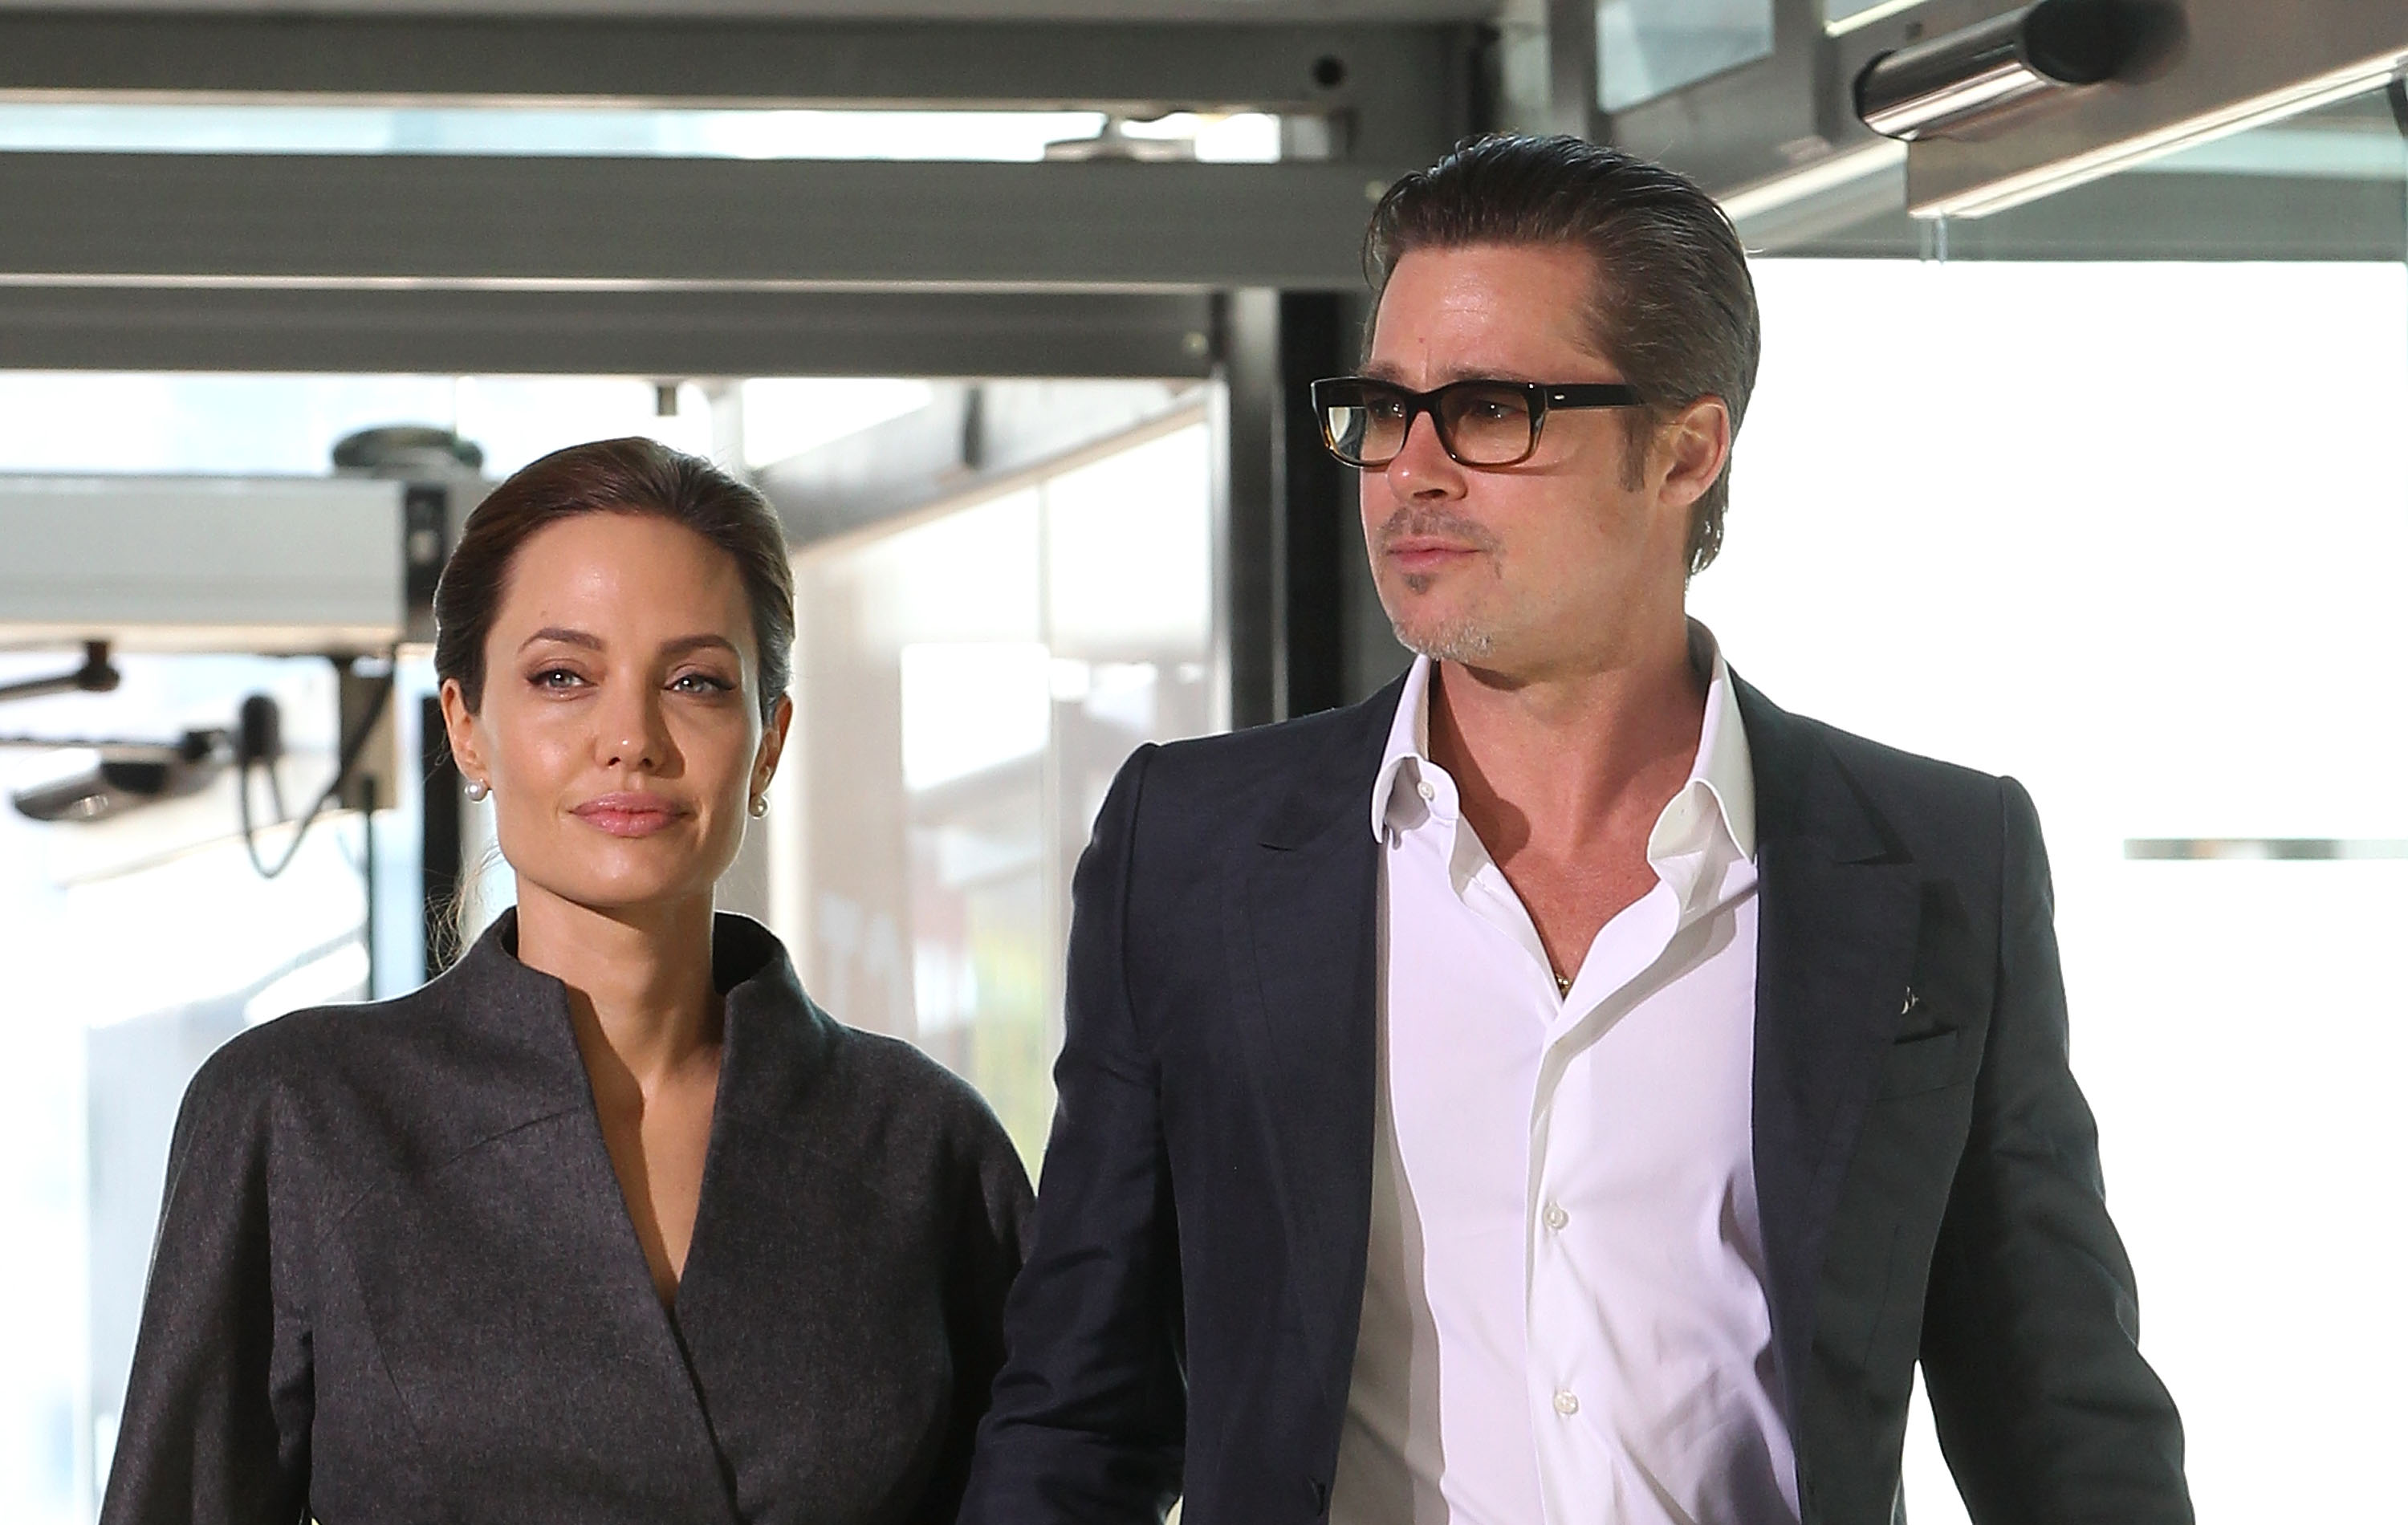 Brad Pitt and Angelina Jolie attend the Global Summit to end Sexual Violence in Conflict at ExCel on June 13, 2014 in London, England.